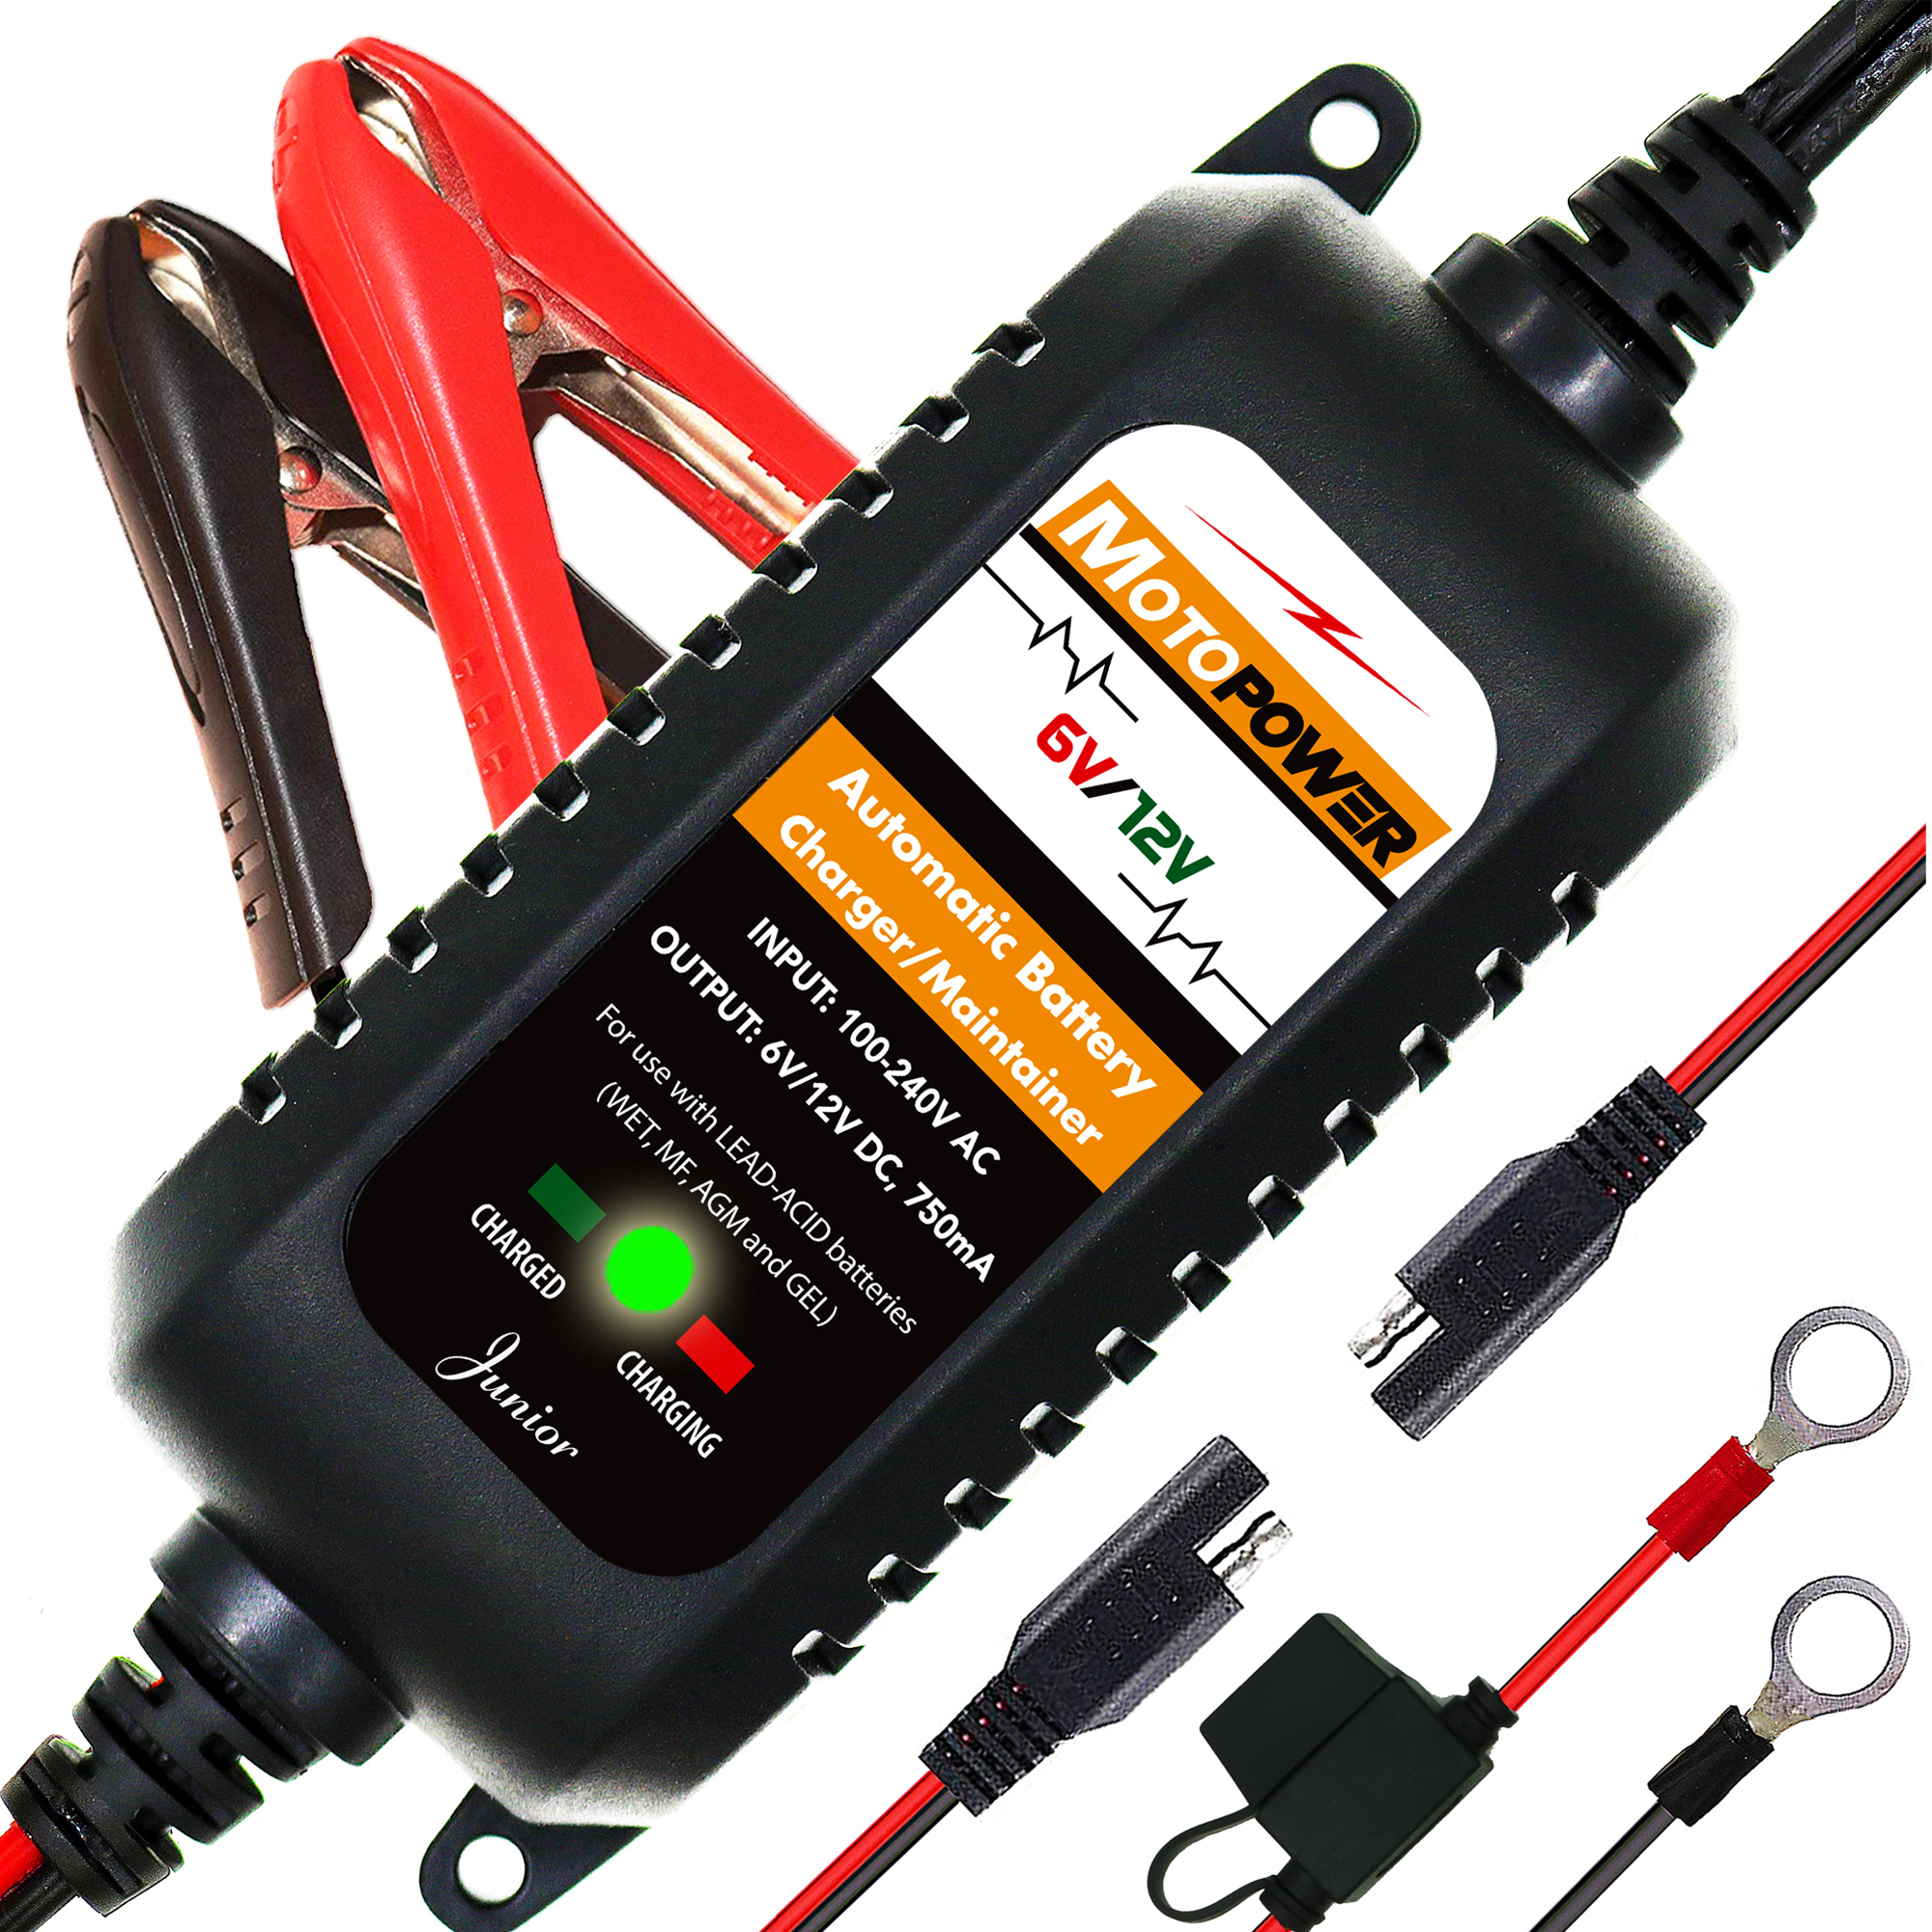 MOTOPOWER 6V 12V 750mA Fully Automatic Smart Battery Charger Maintainer for Car Motorcycle all types of lead acid batteries